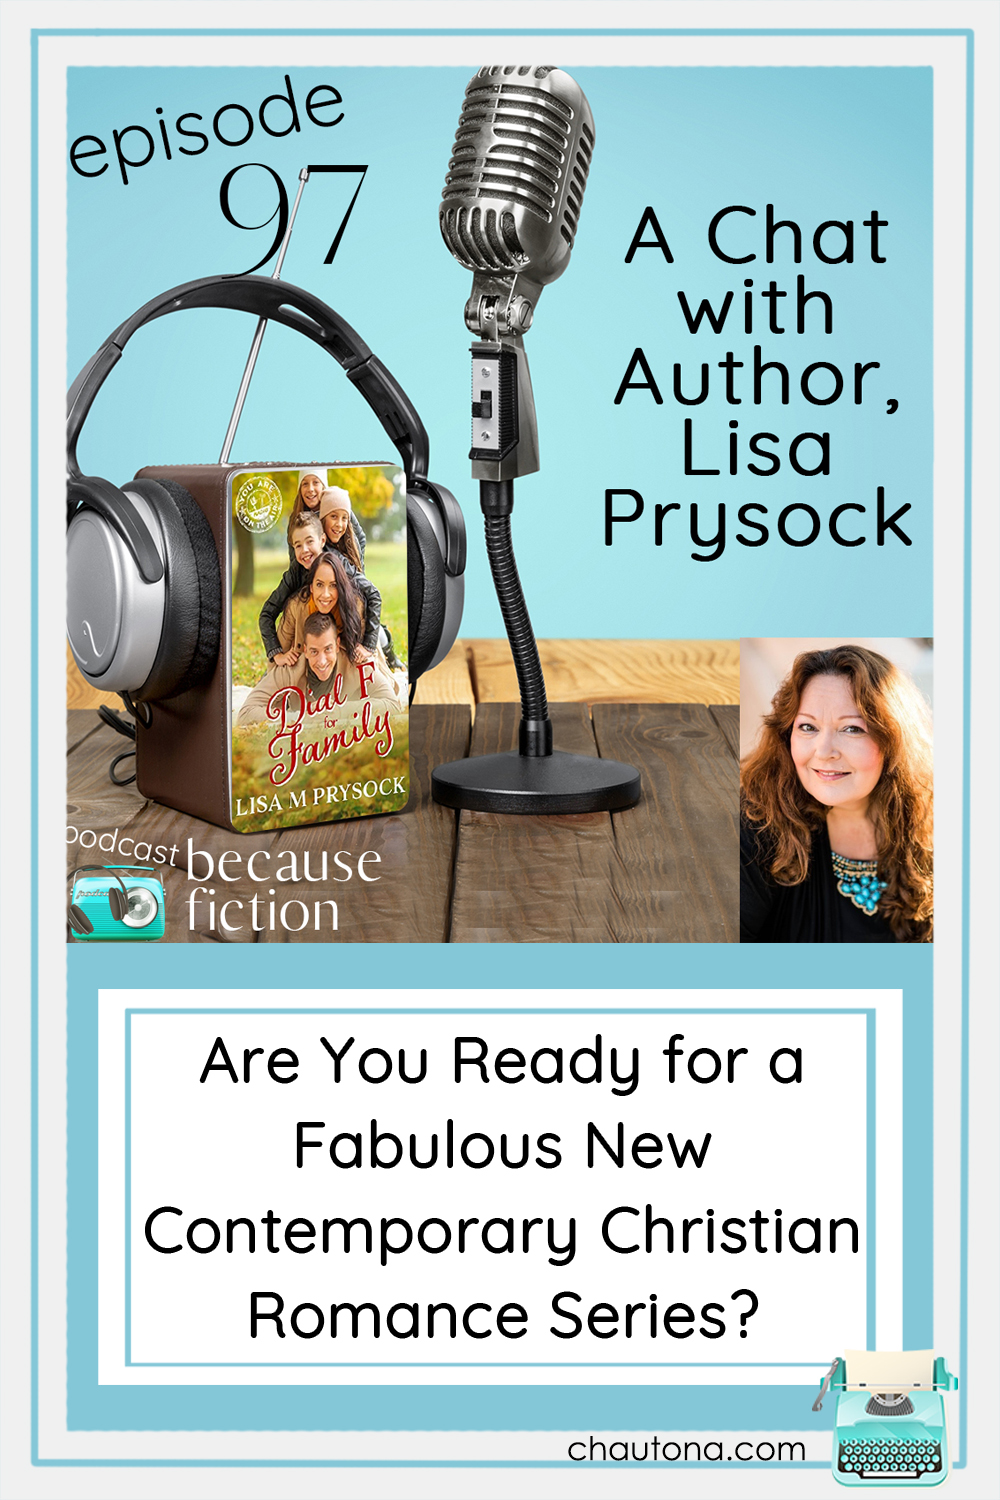 Lisa Prysock and I had a lovely chat about how she got started writing, what she's working on now, and her latest book, Dial F for Family. via @chautonahavig